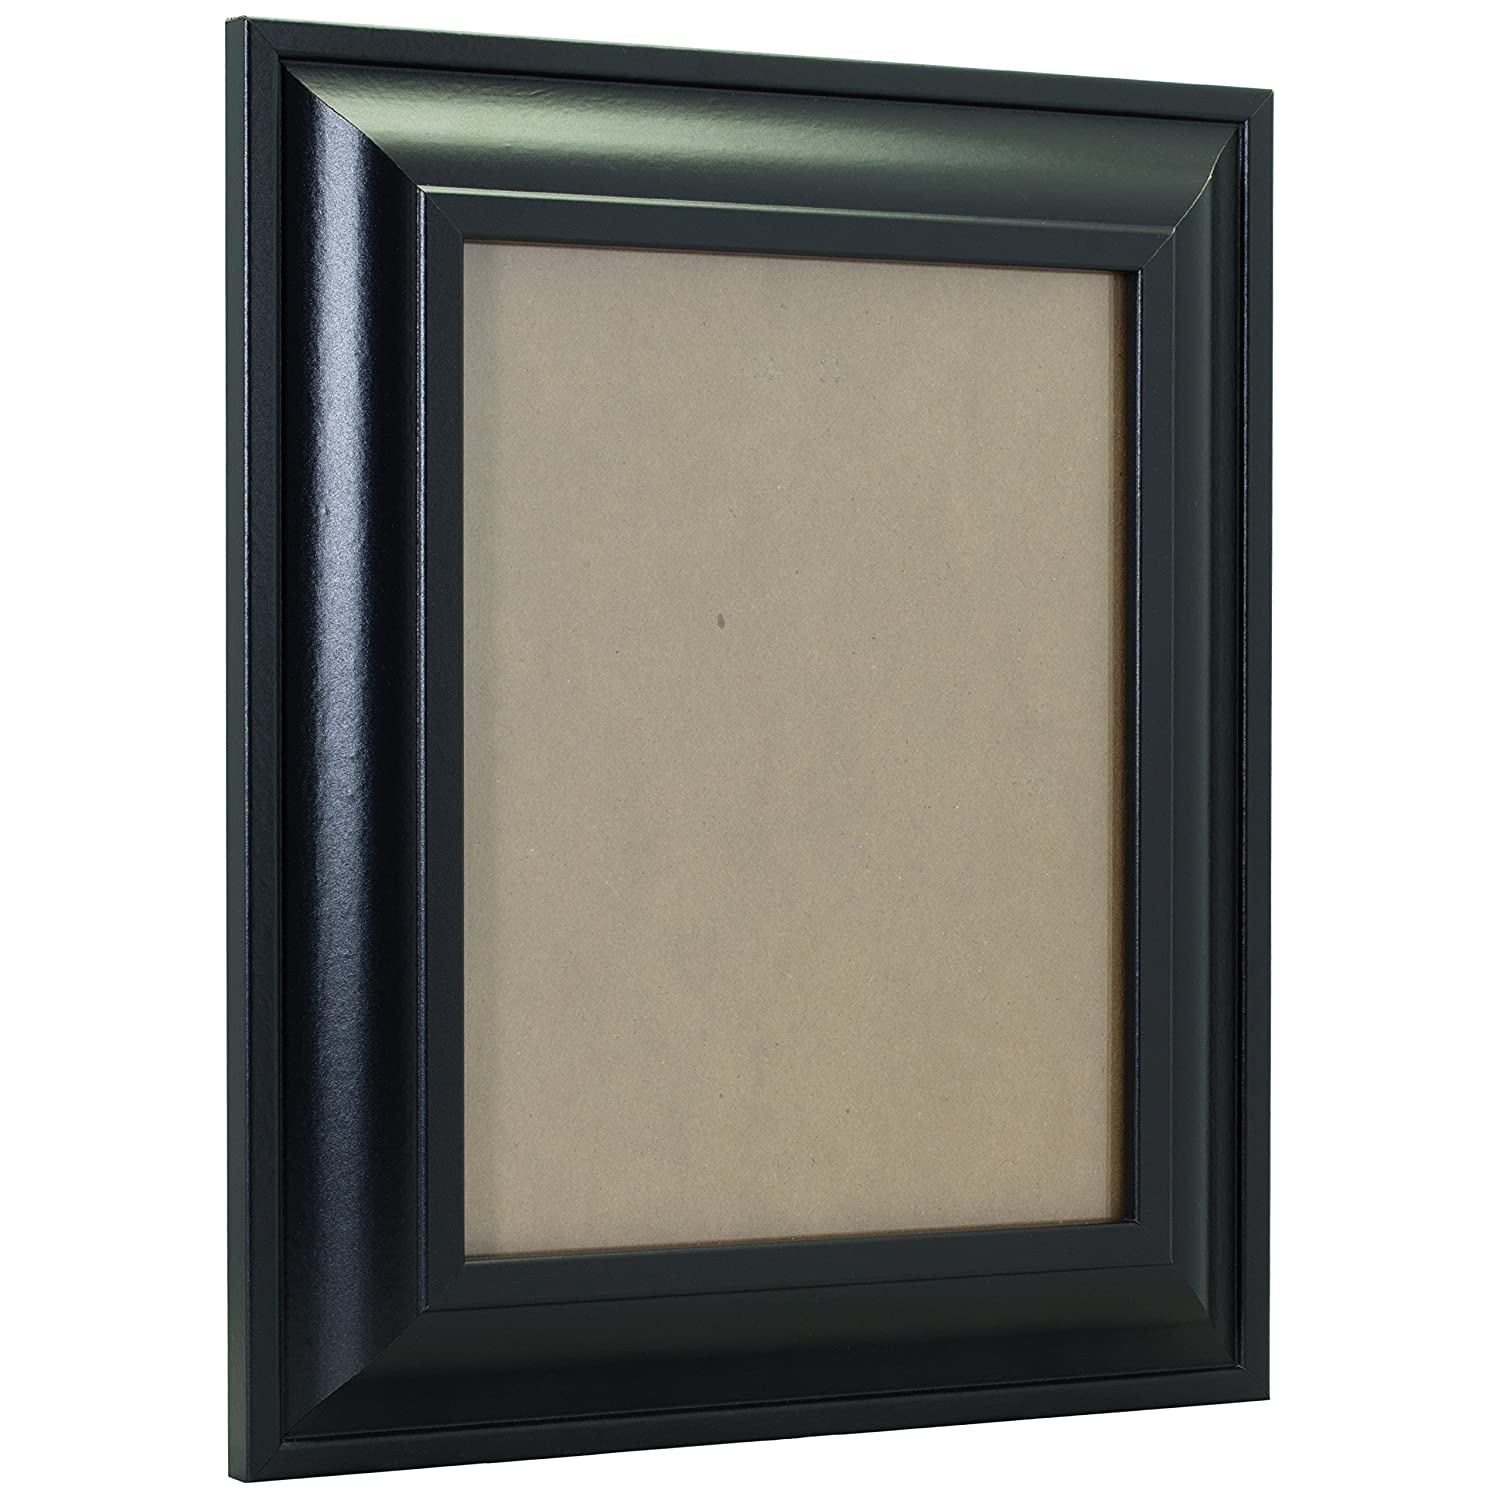 Amazon craig frames 21834700bk 13x19 pictureposter frame amazon craig frames 21834700bk 13x19 pictureposter frame smooth finish 2 inch wide black single frames jeuxipadfo Gallery